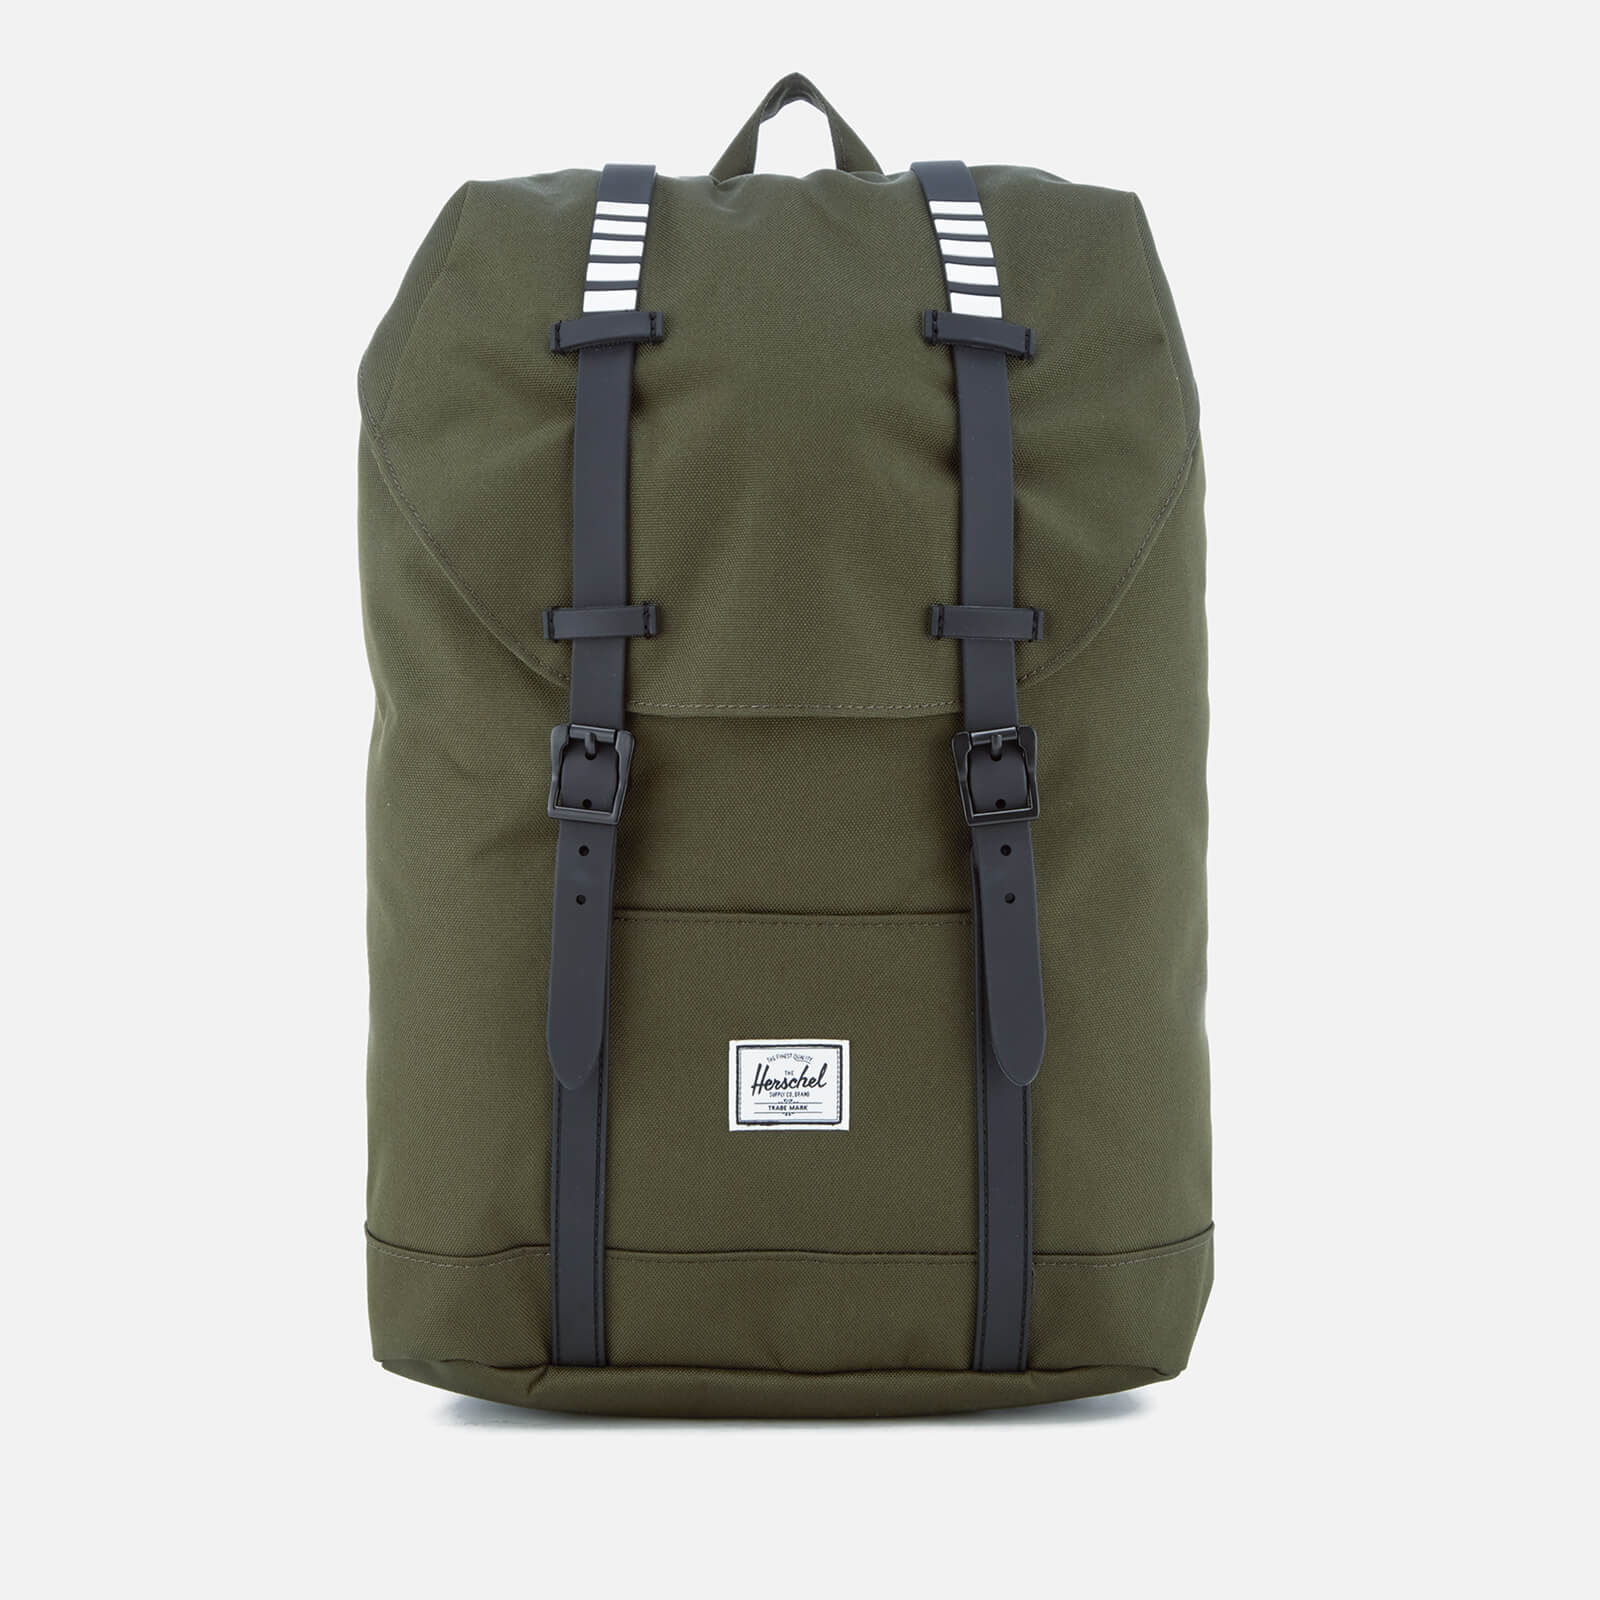 135cd7c99 Herschel Supply Co. Retreat Mid-Volume Backpack - Forest Night/Black  Rubber/White Inset - Free UK Delivery over £50